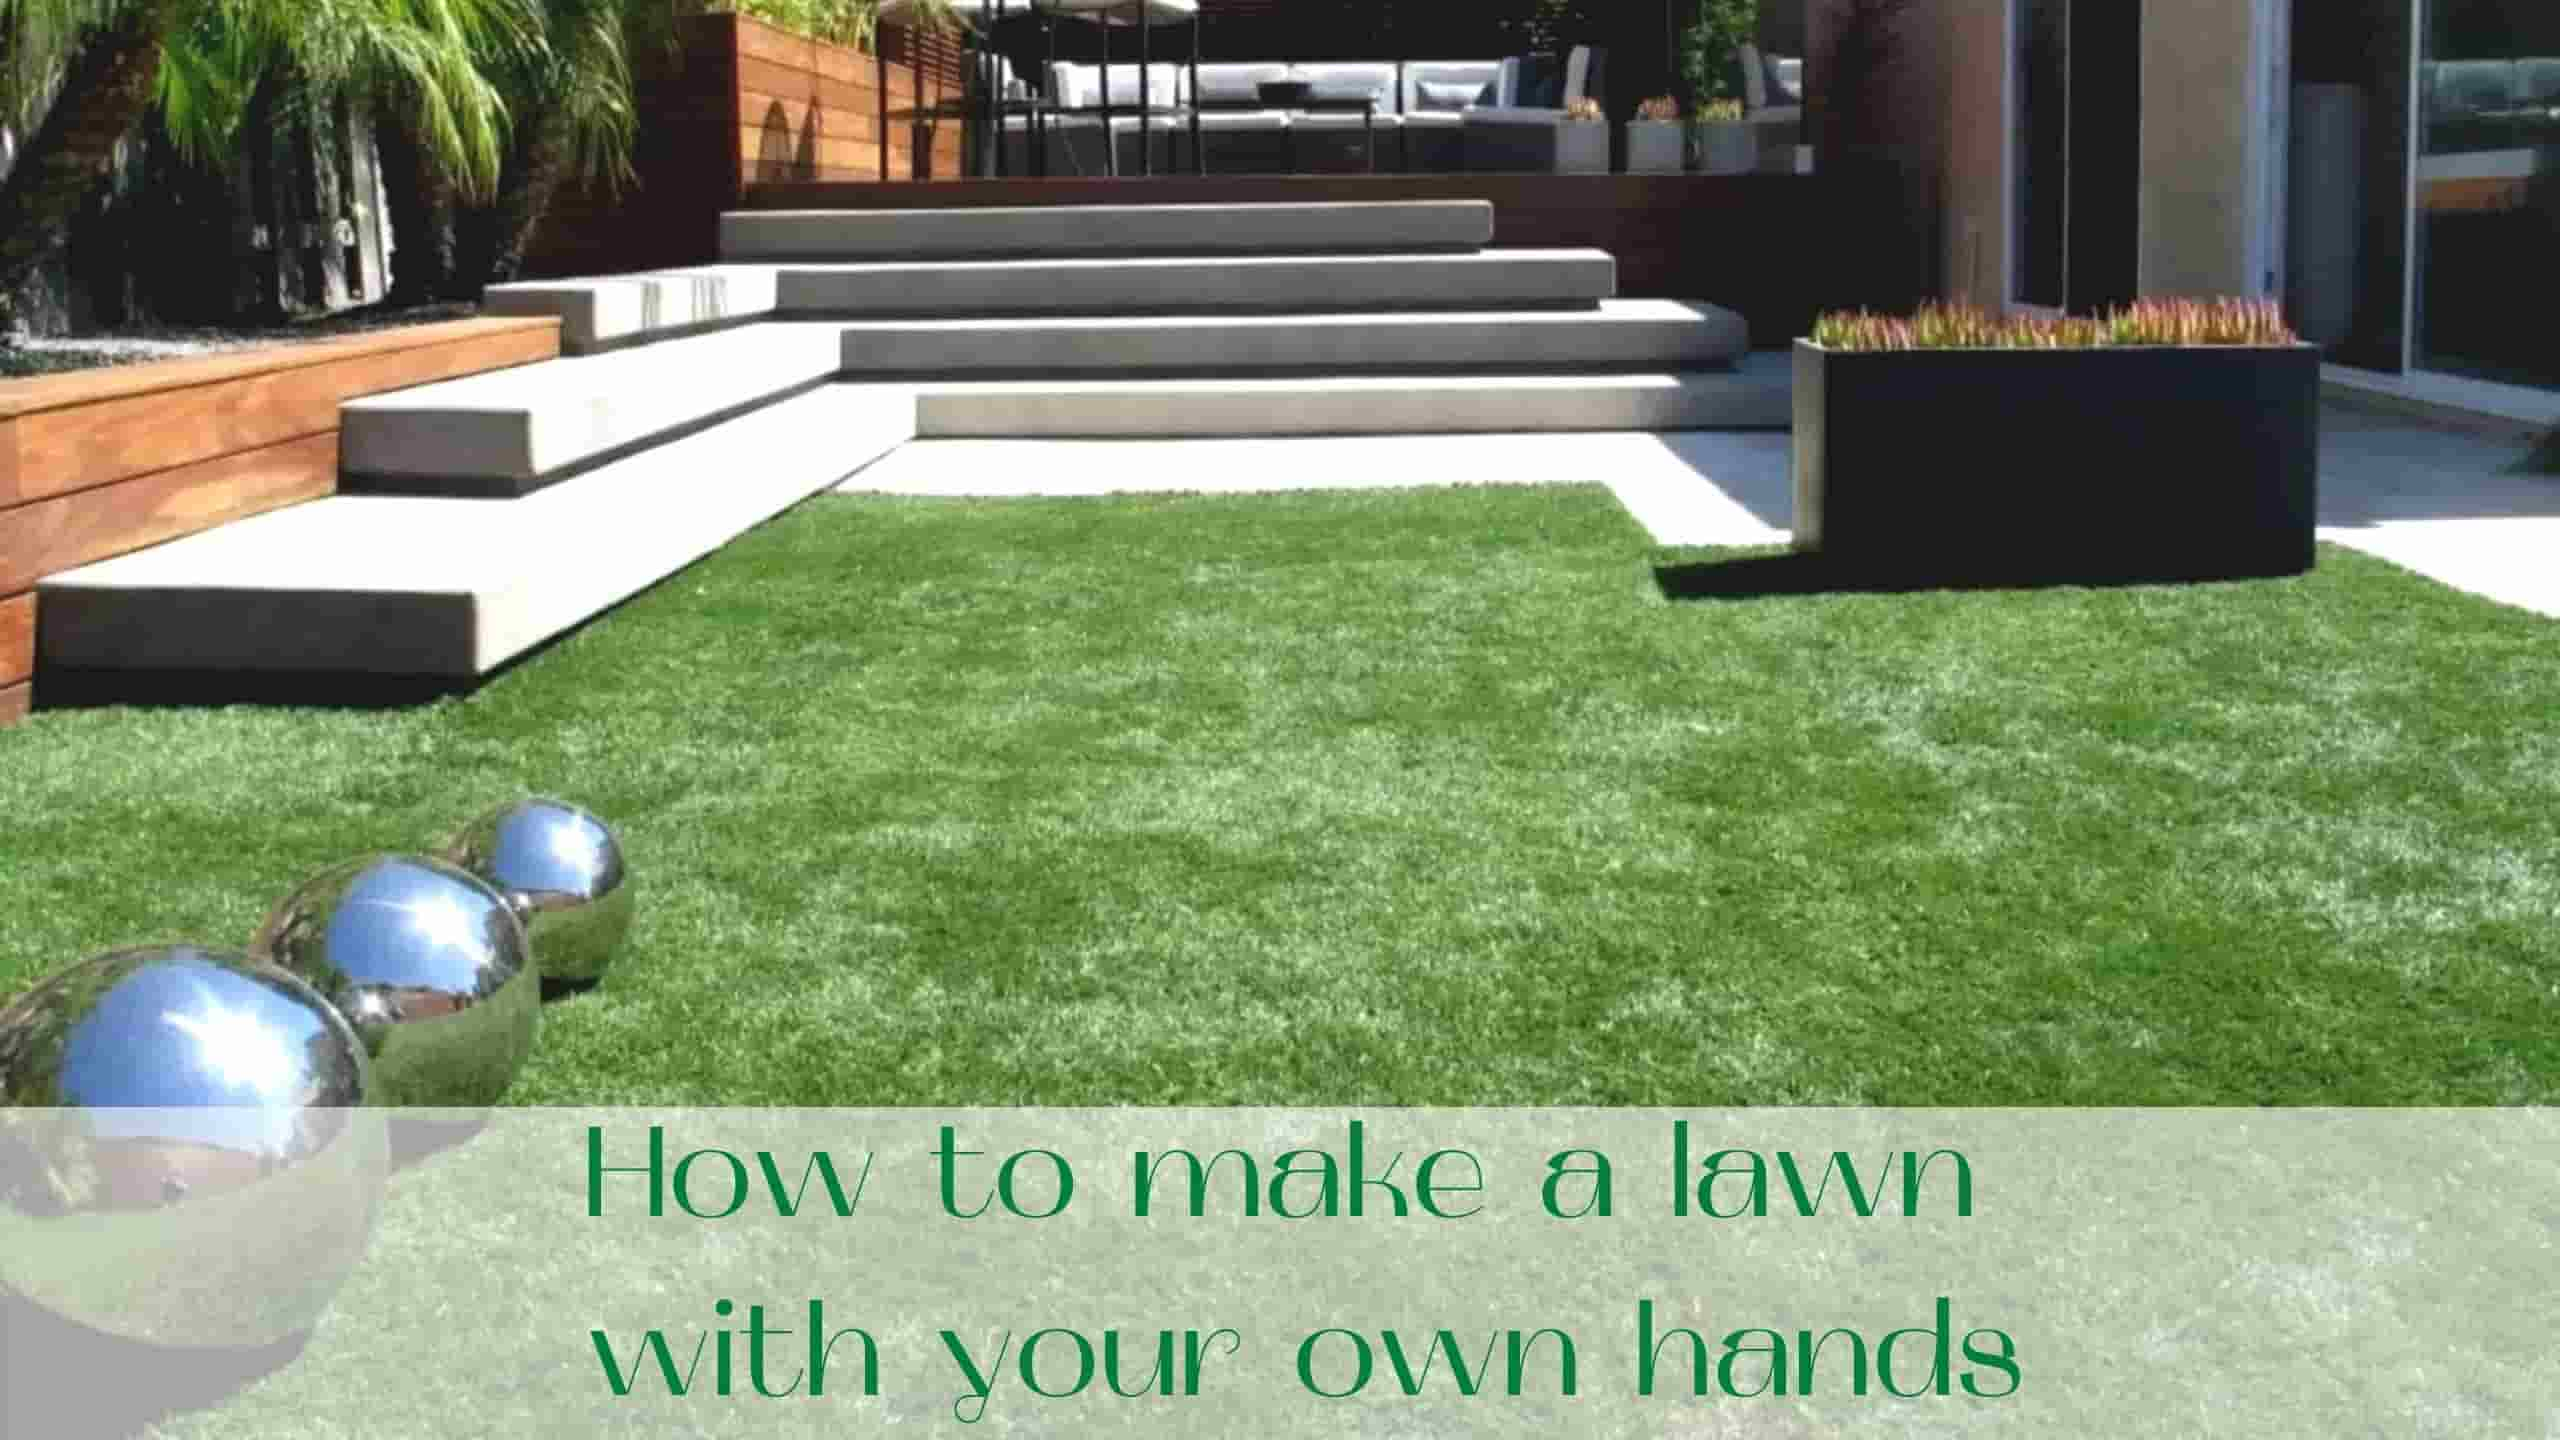 image-How-to-make-a-lawn-with-your-own-hands